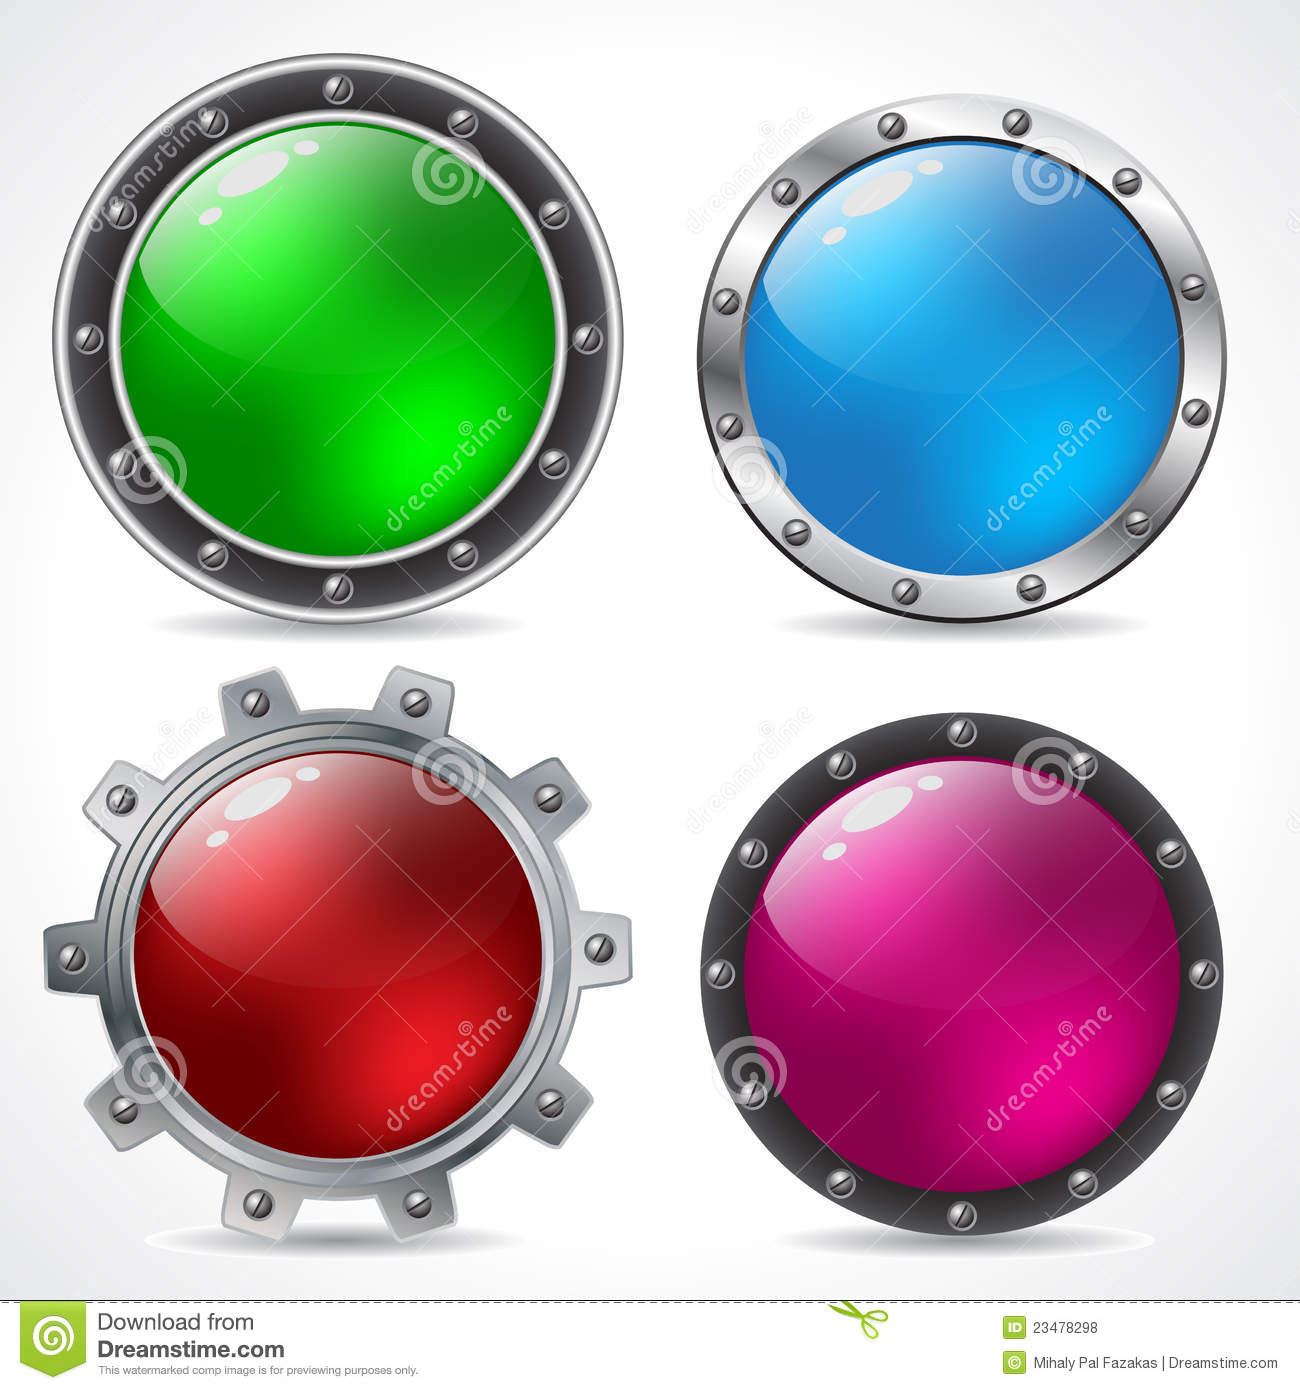 Cool New Technology Button Design Stock Vector - Illustration of ...